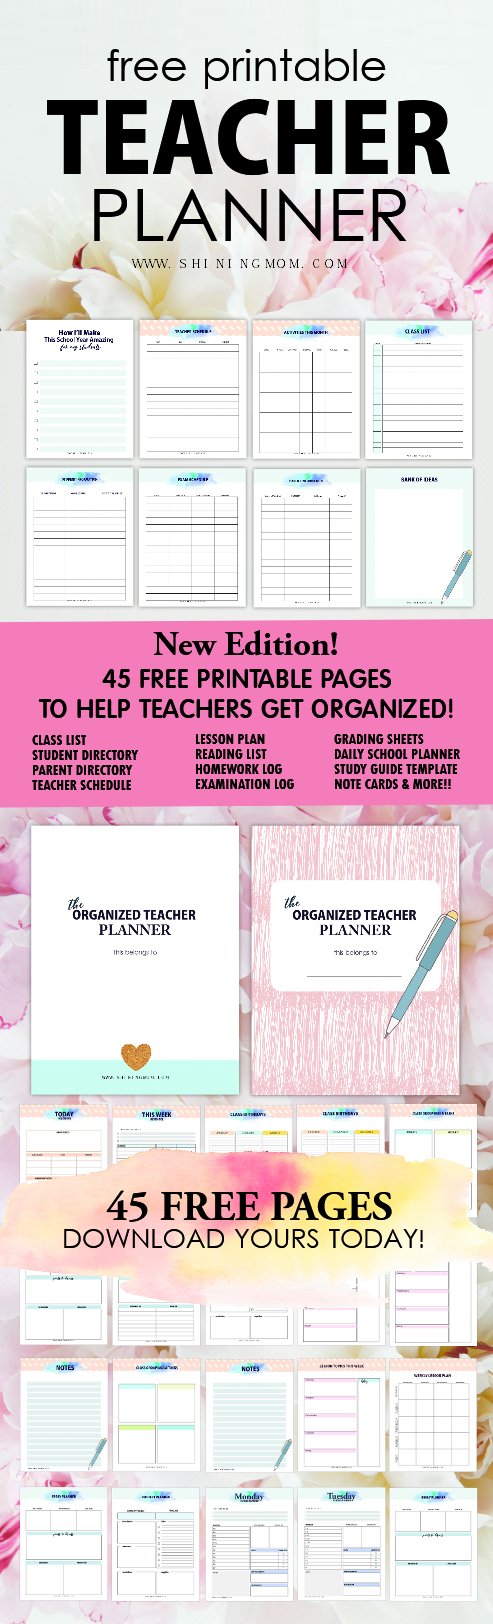 image relating to Free Printable Organizing Sheets identify Absolutely free Printable Trainer Planner: 45+ Higher education Scheduling Templates!